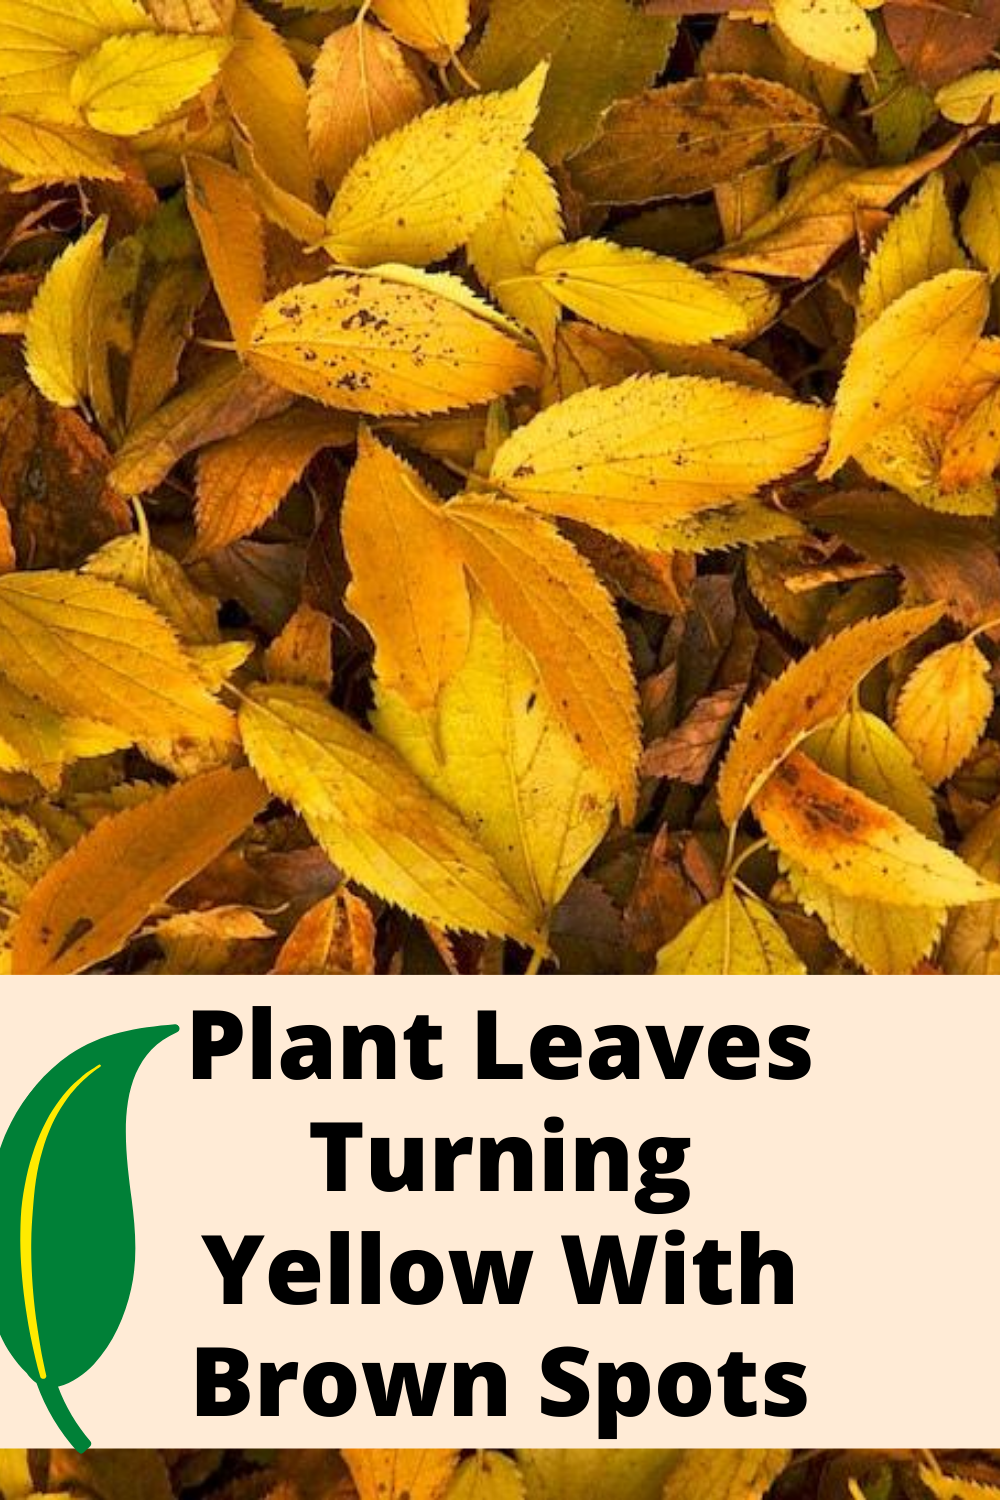 Plant Leaves Turning Yellow With Brown Spots Plant Leaves Turning Plant Leaves Turning Yellow Plant Leaves